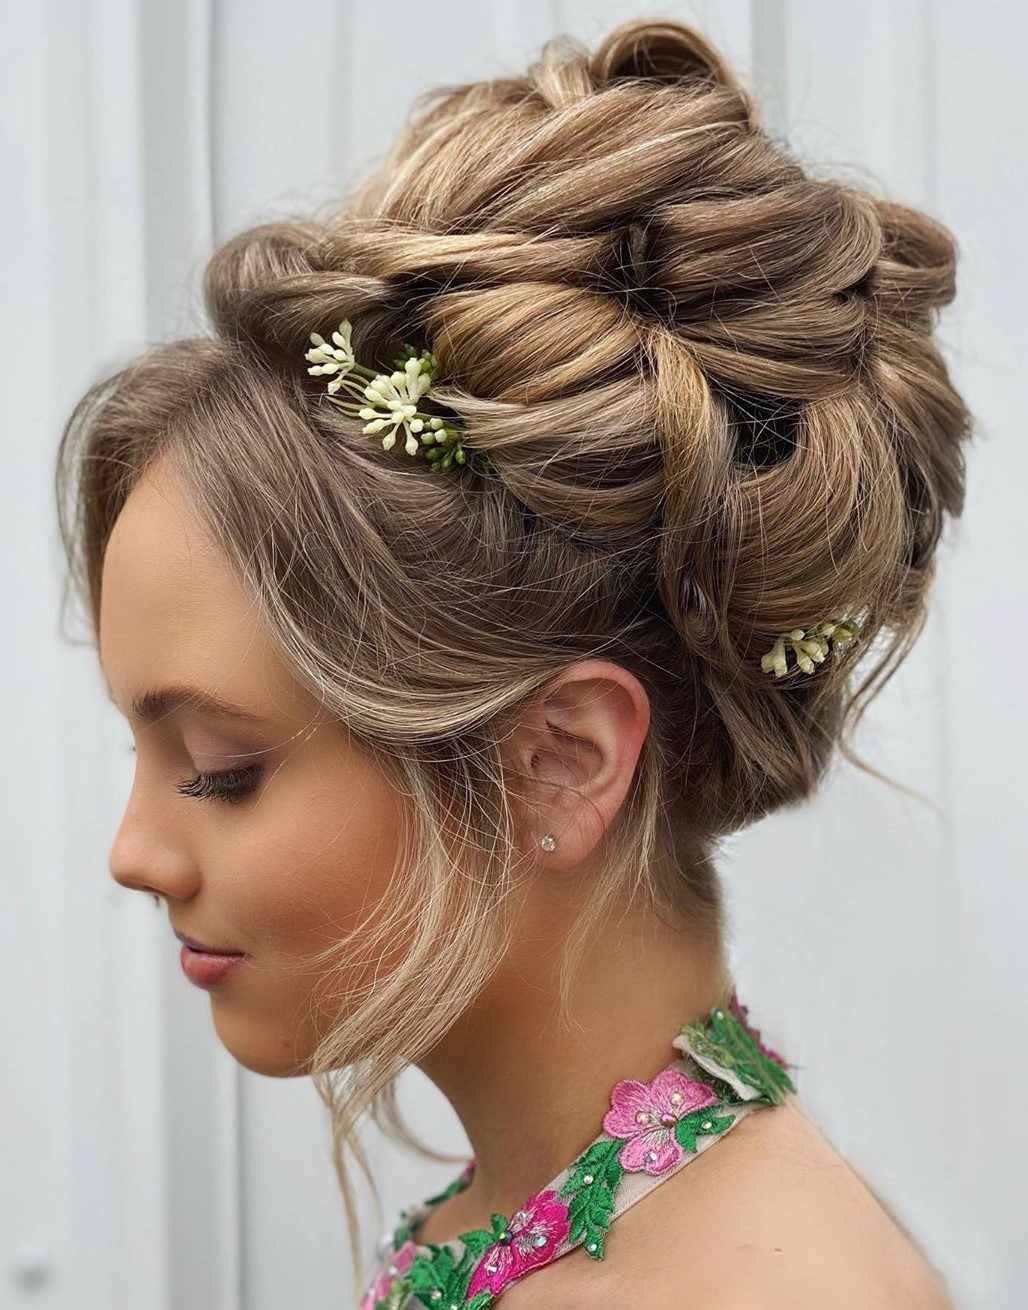 Bridesmaid's Updo with Flowers